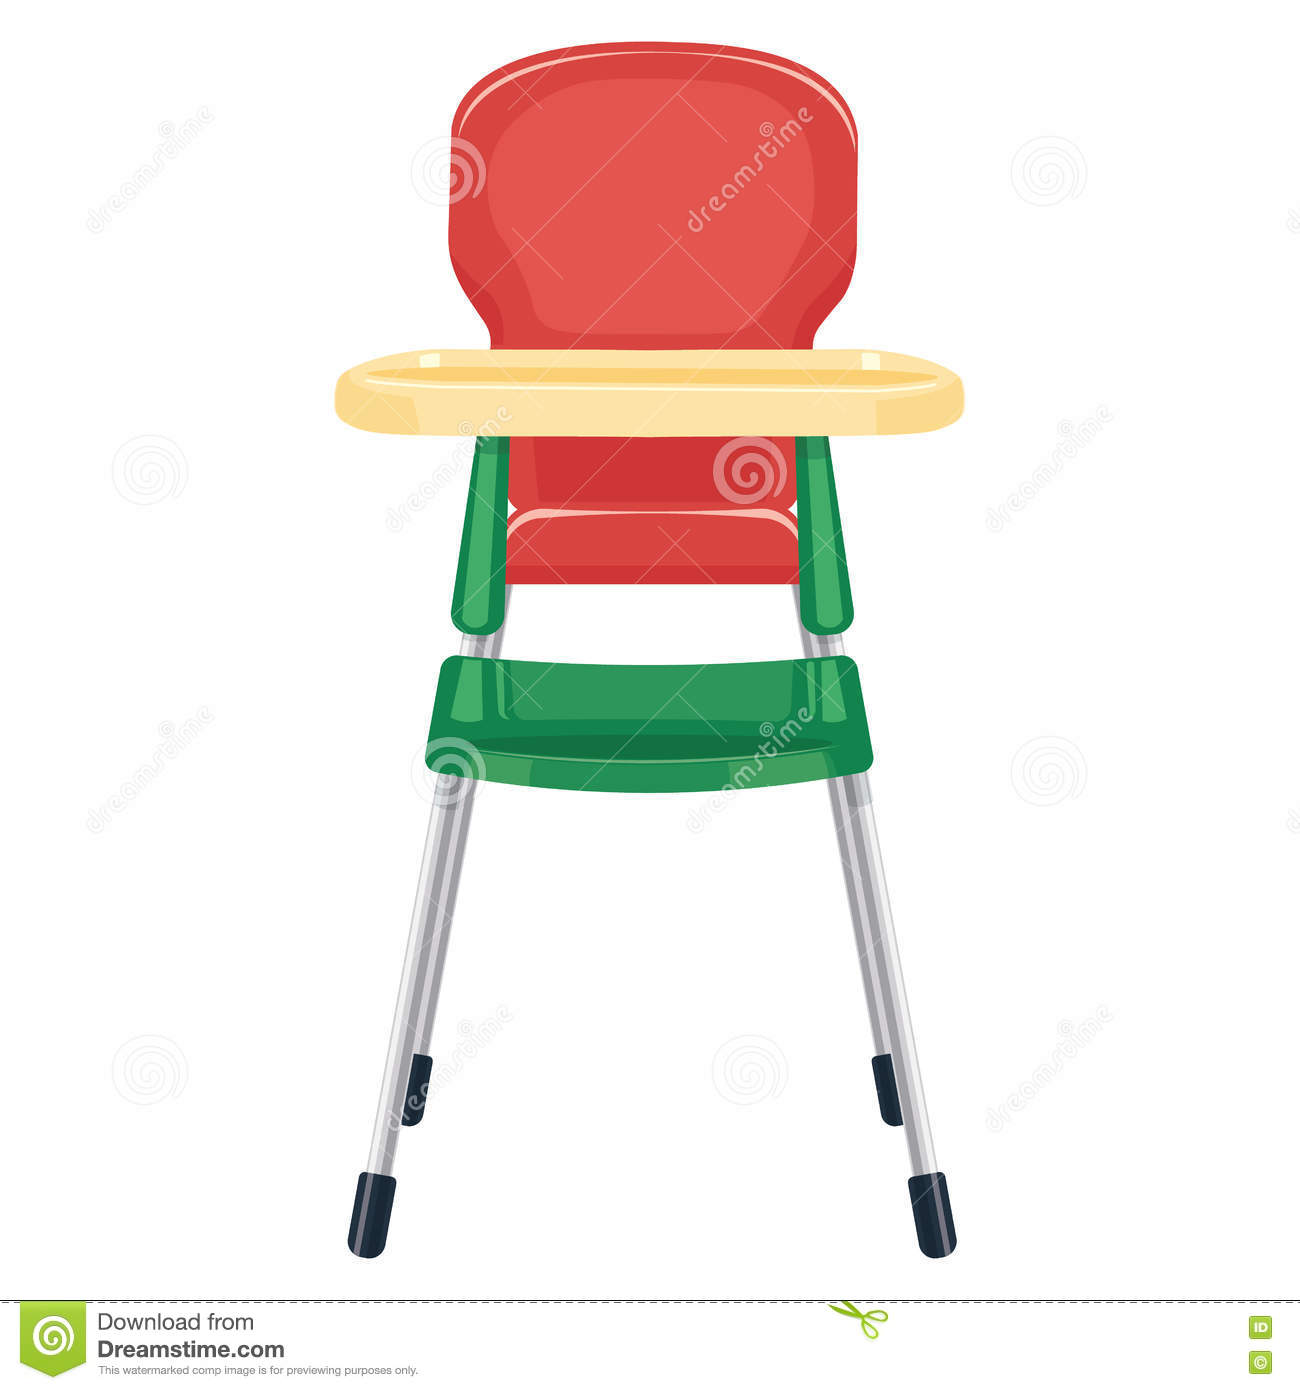 toddler chair with tray french bistro dining chairs baby vector illustration on white background stock - image: 73500368